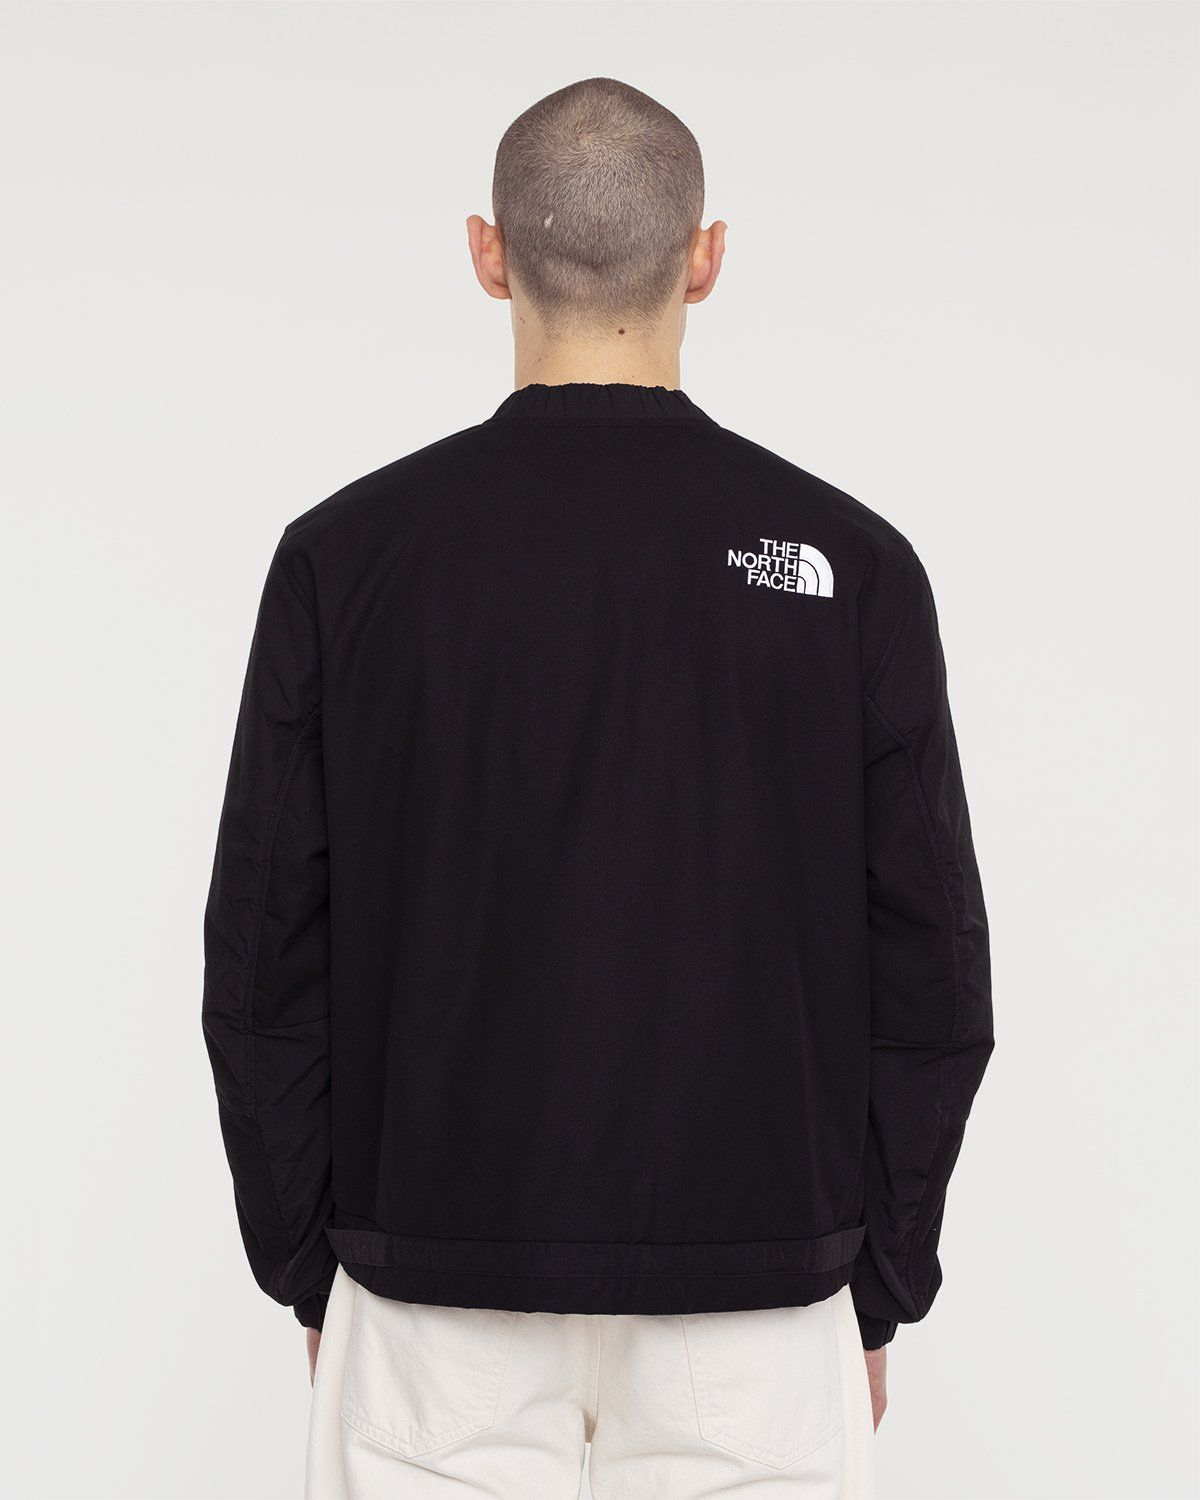 The North Face Black Series - Spectra® Blouson Jacket Black  - Image 6